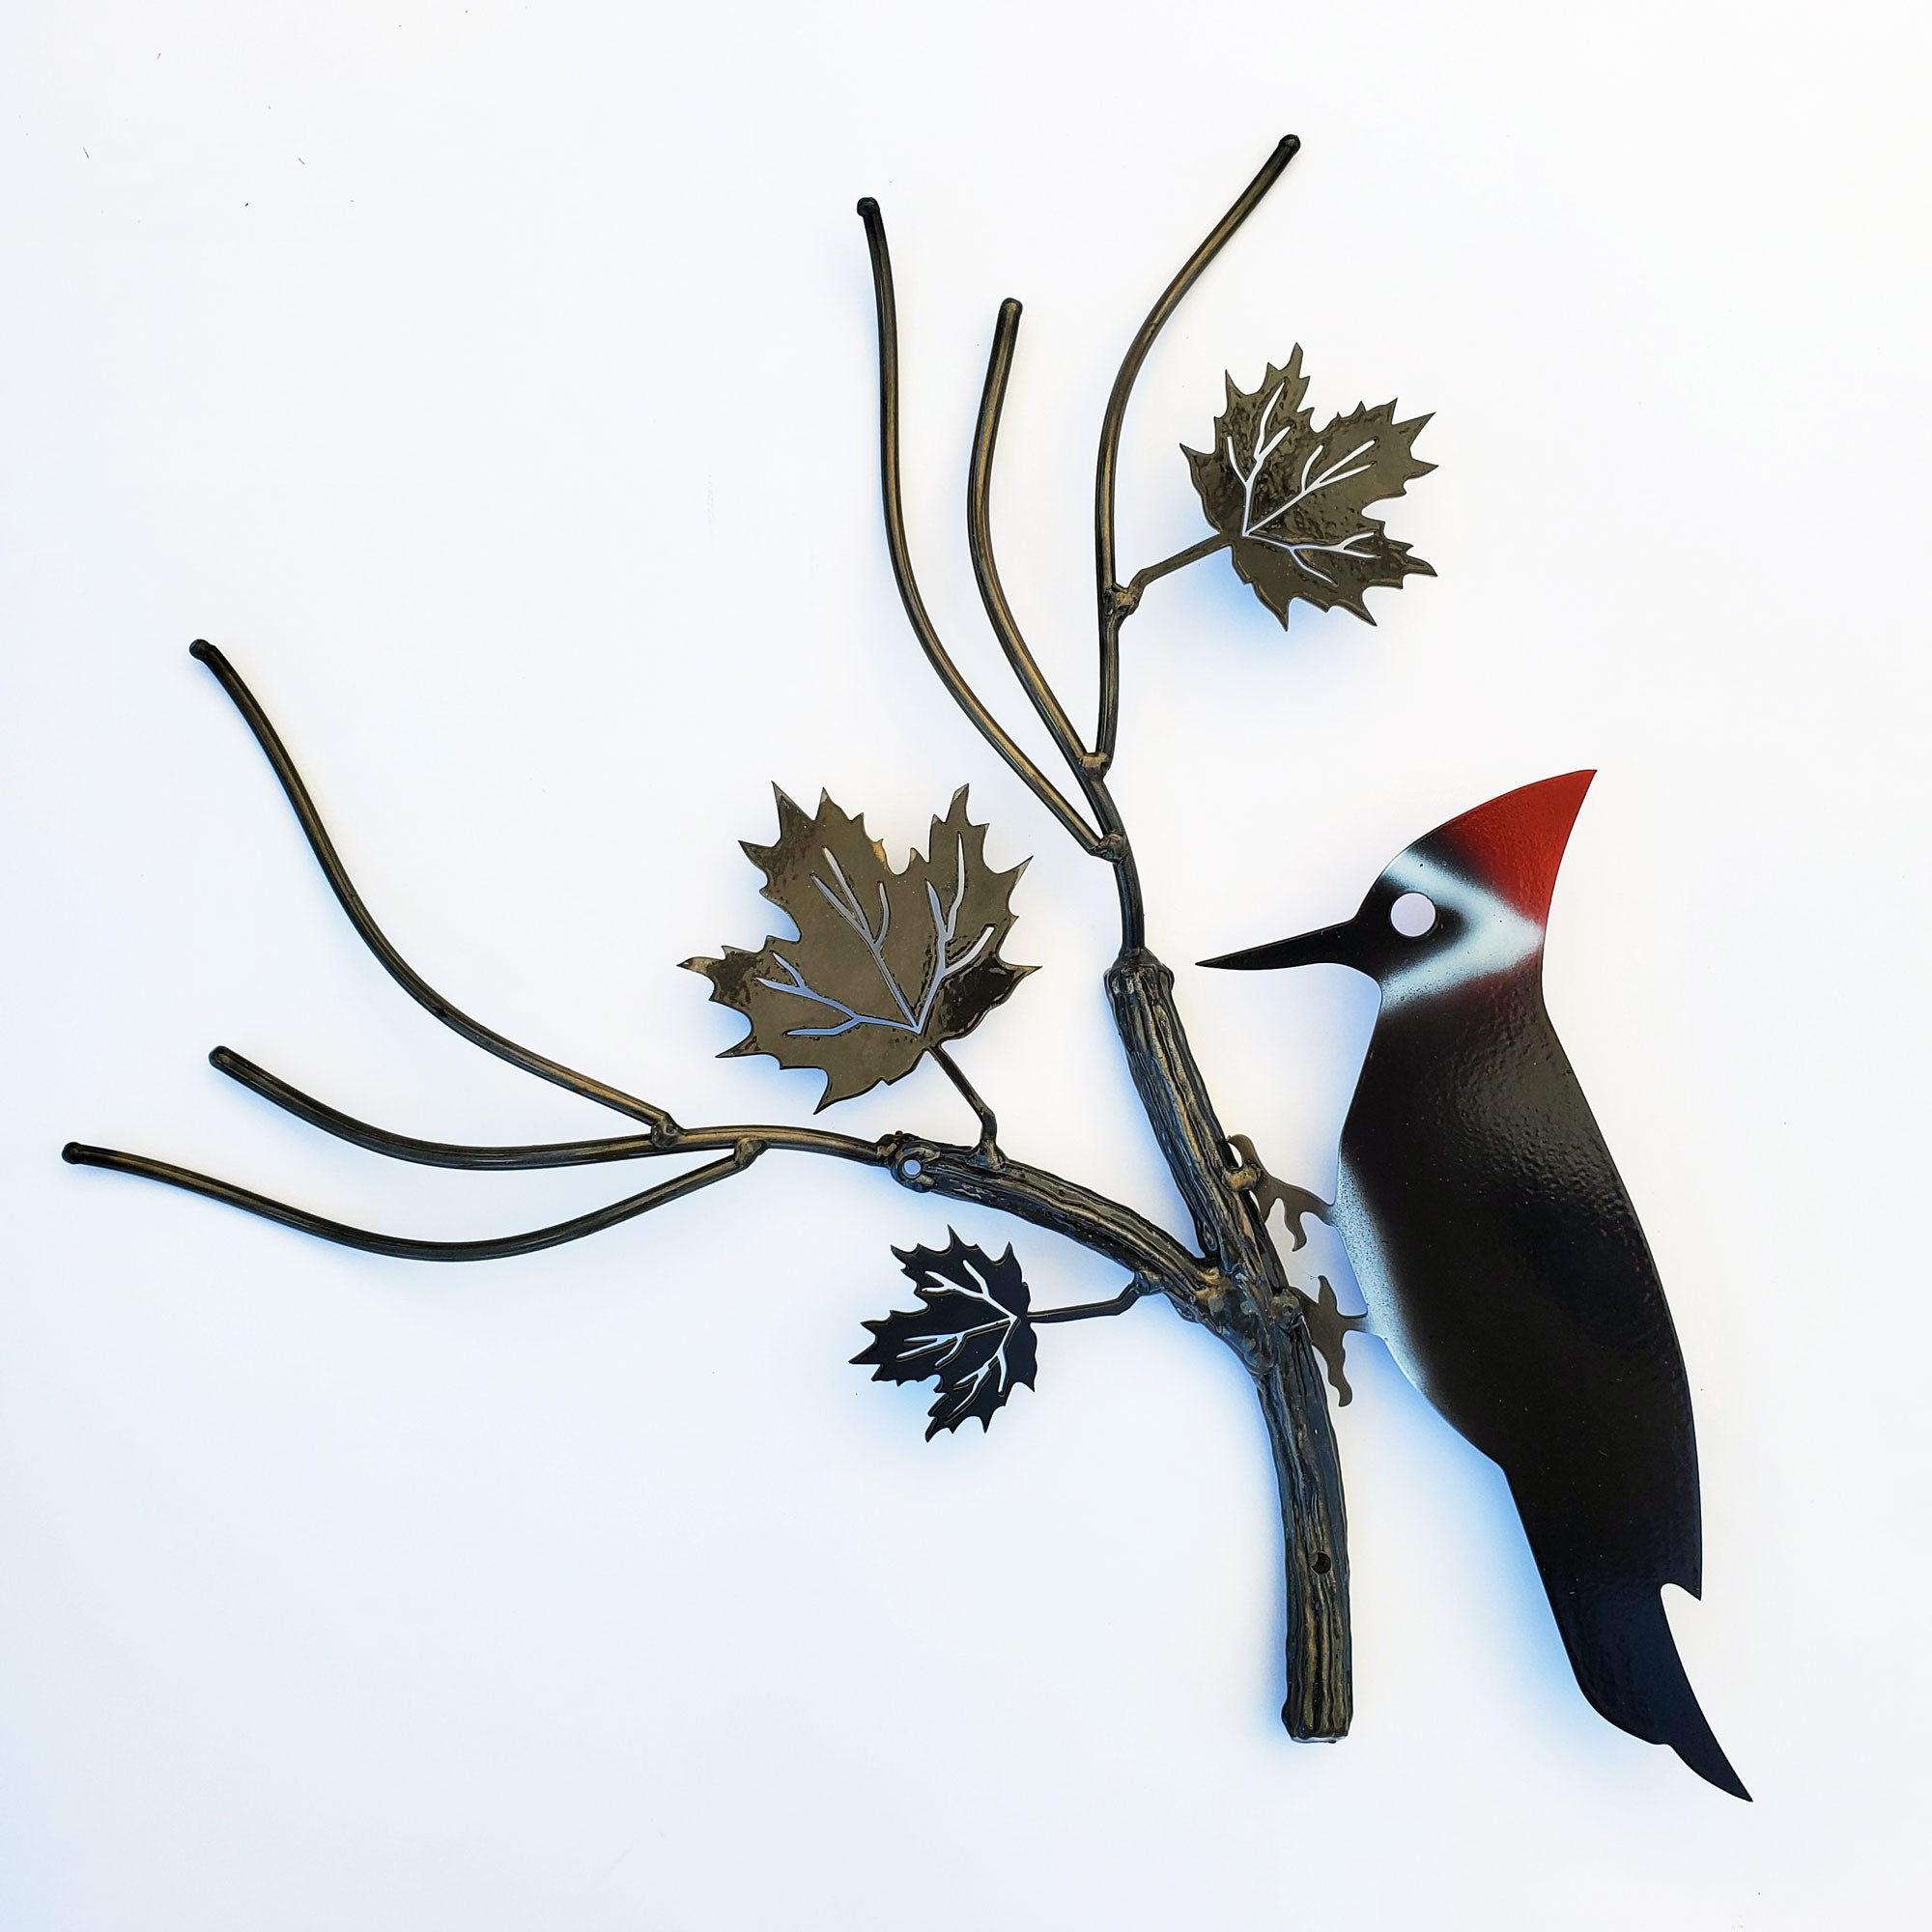 Articulated Metal Wall Art Woodpecker Large Welded Branch Garden Decor | Home Decor Metal Art